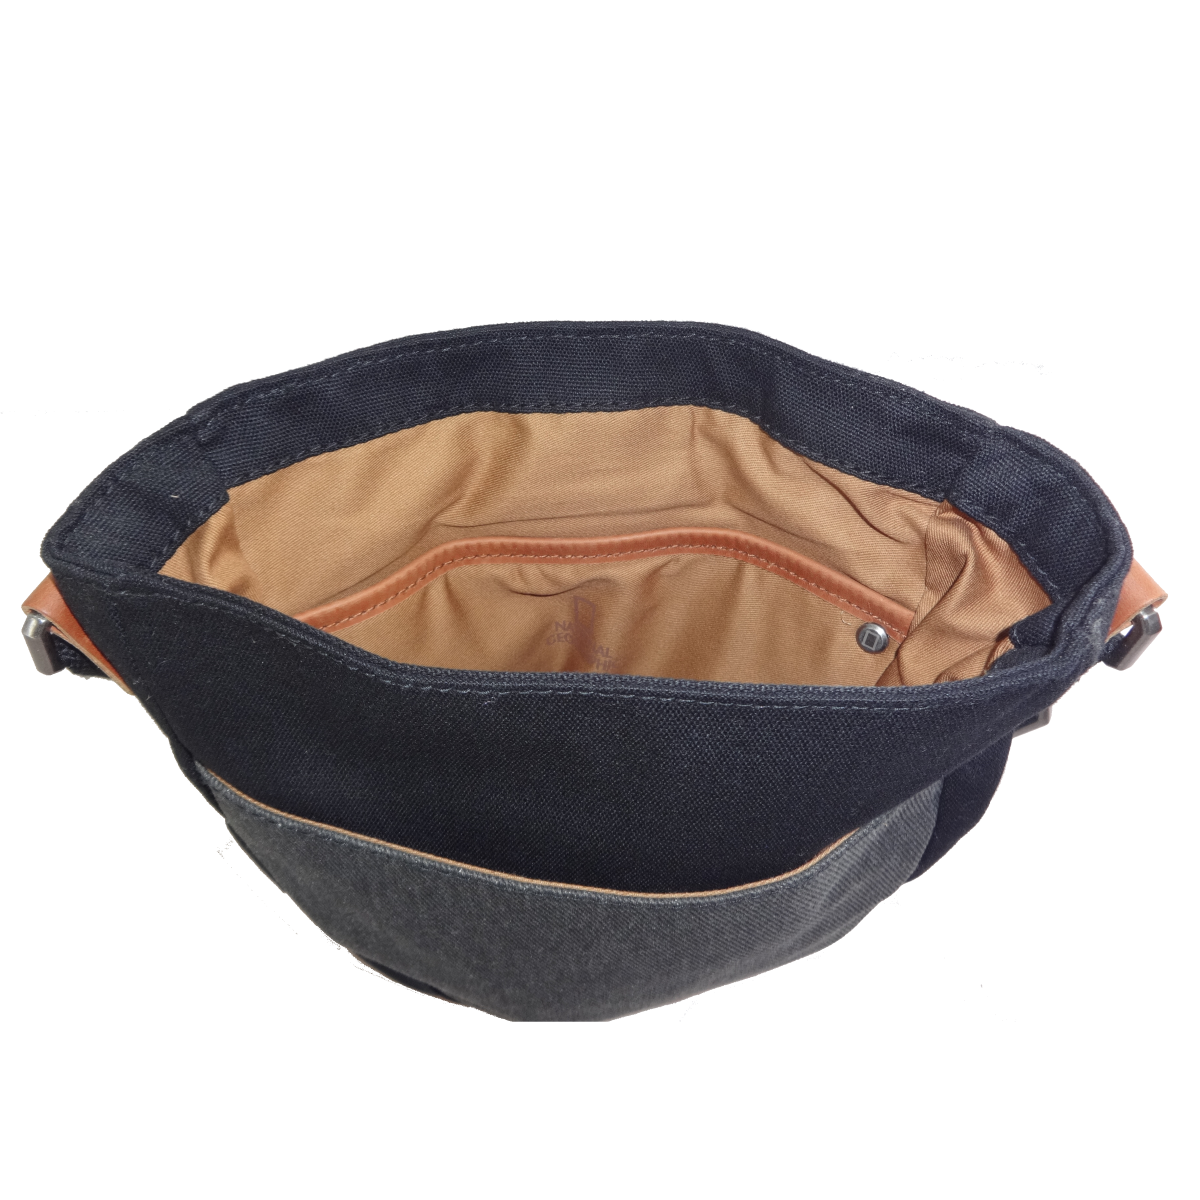 route-utility-bag-inside(web).png